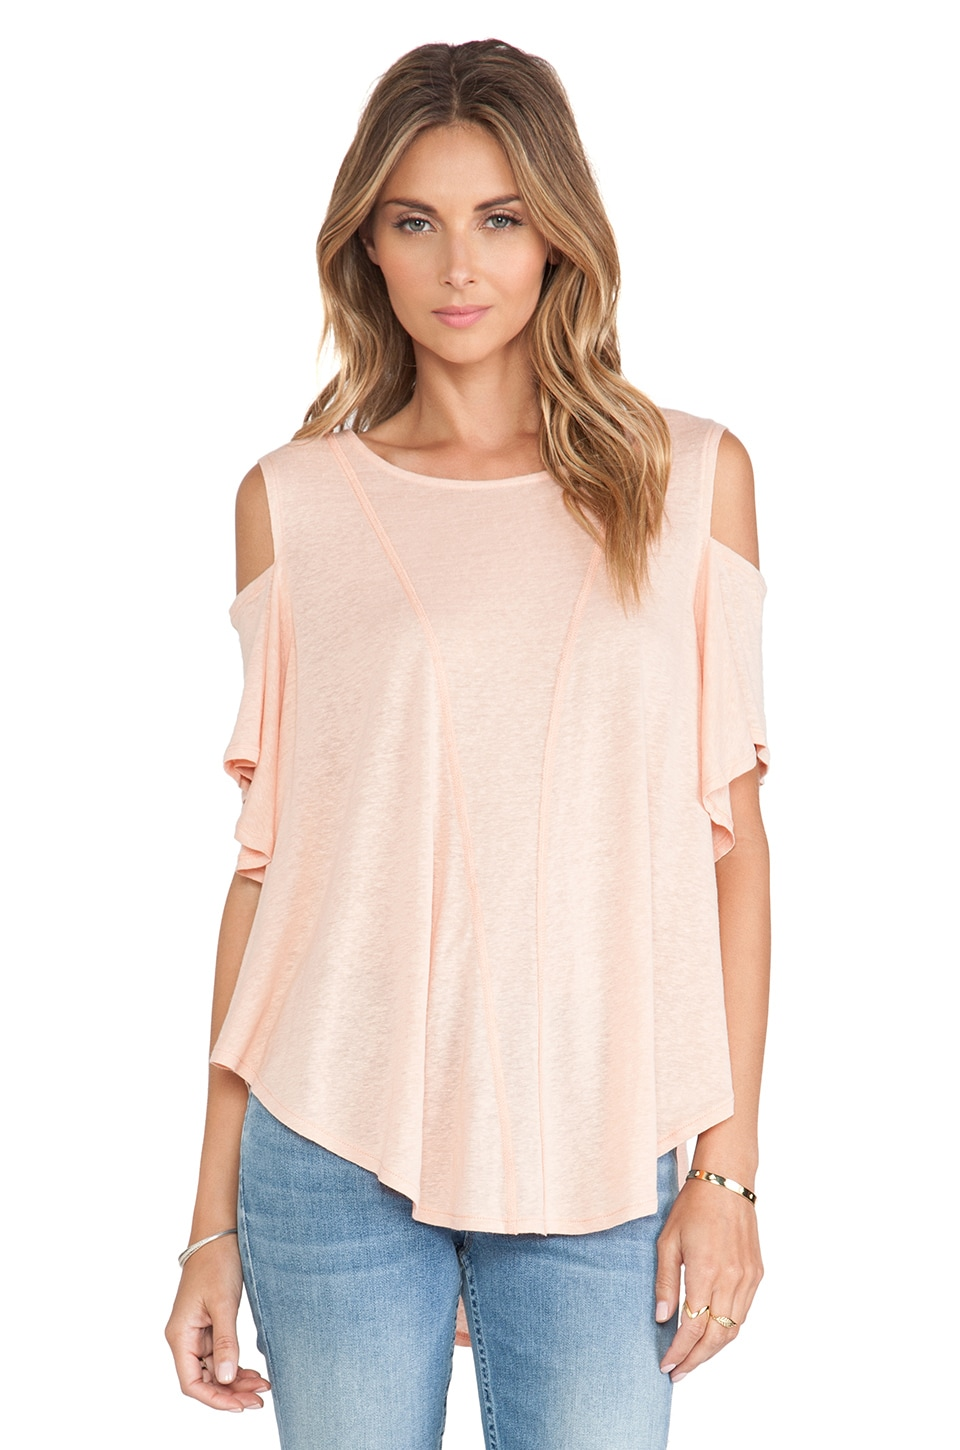 Free People Cold Shoulder Top in Peach